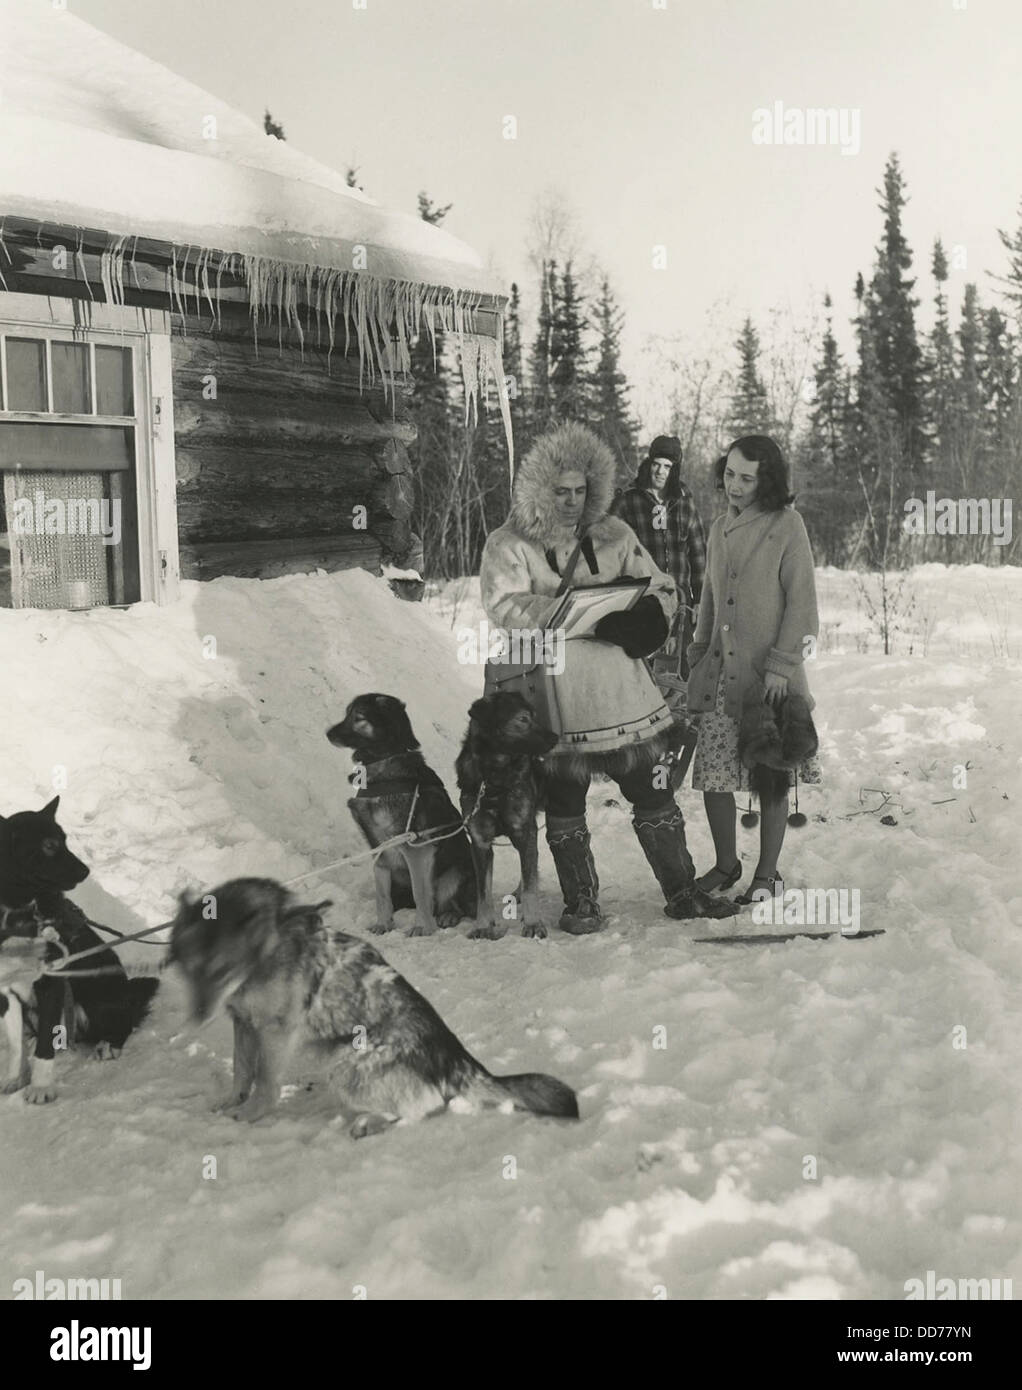 1940s Census taker in Fairbanks, Alaska. He traveled by dog sled to reach this woman's home. The dog musher - Stock Image